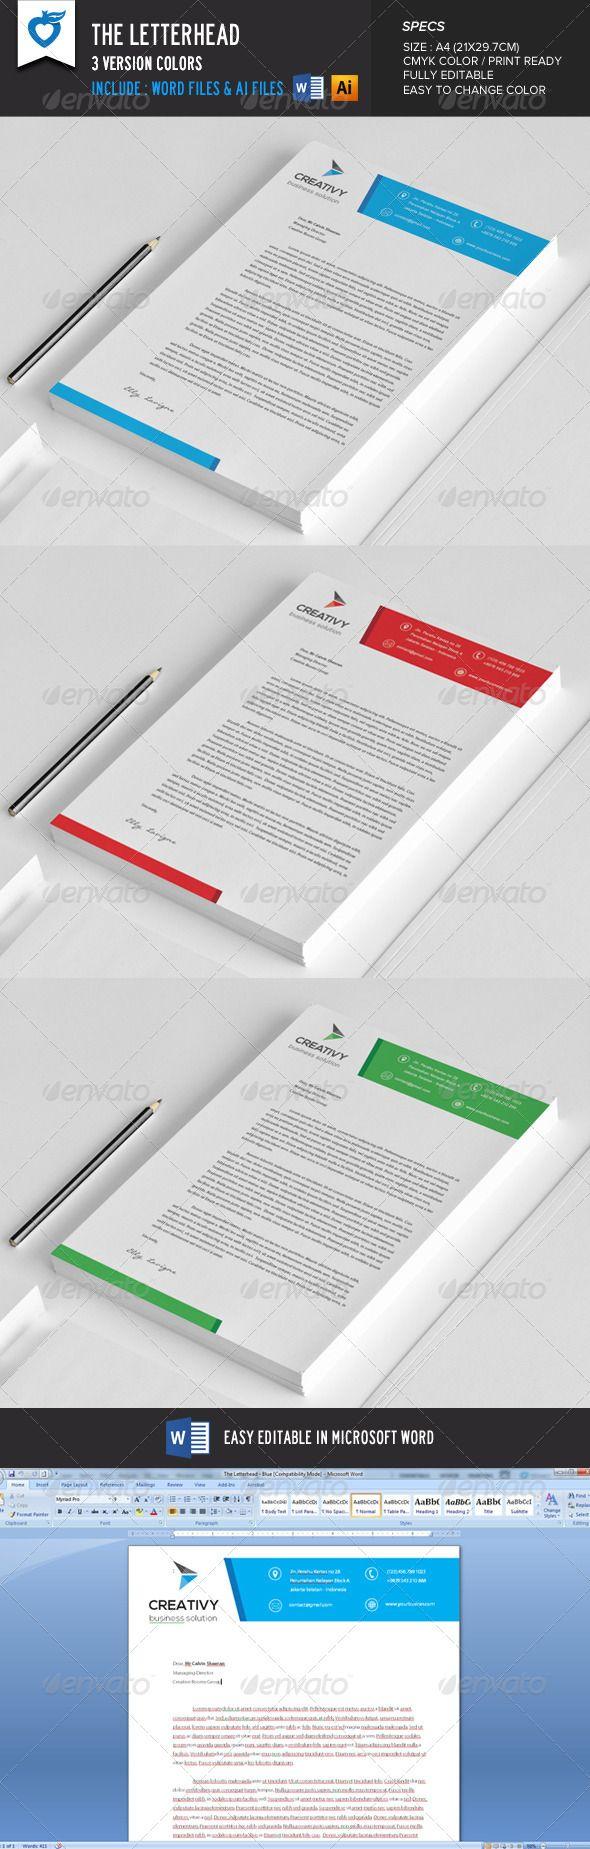 The #Letterhead - #Stationery Print Templates Download here: https://graphicriver.net/item/the-letterhead/8621502?ref=artgallery8